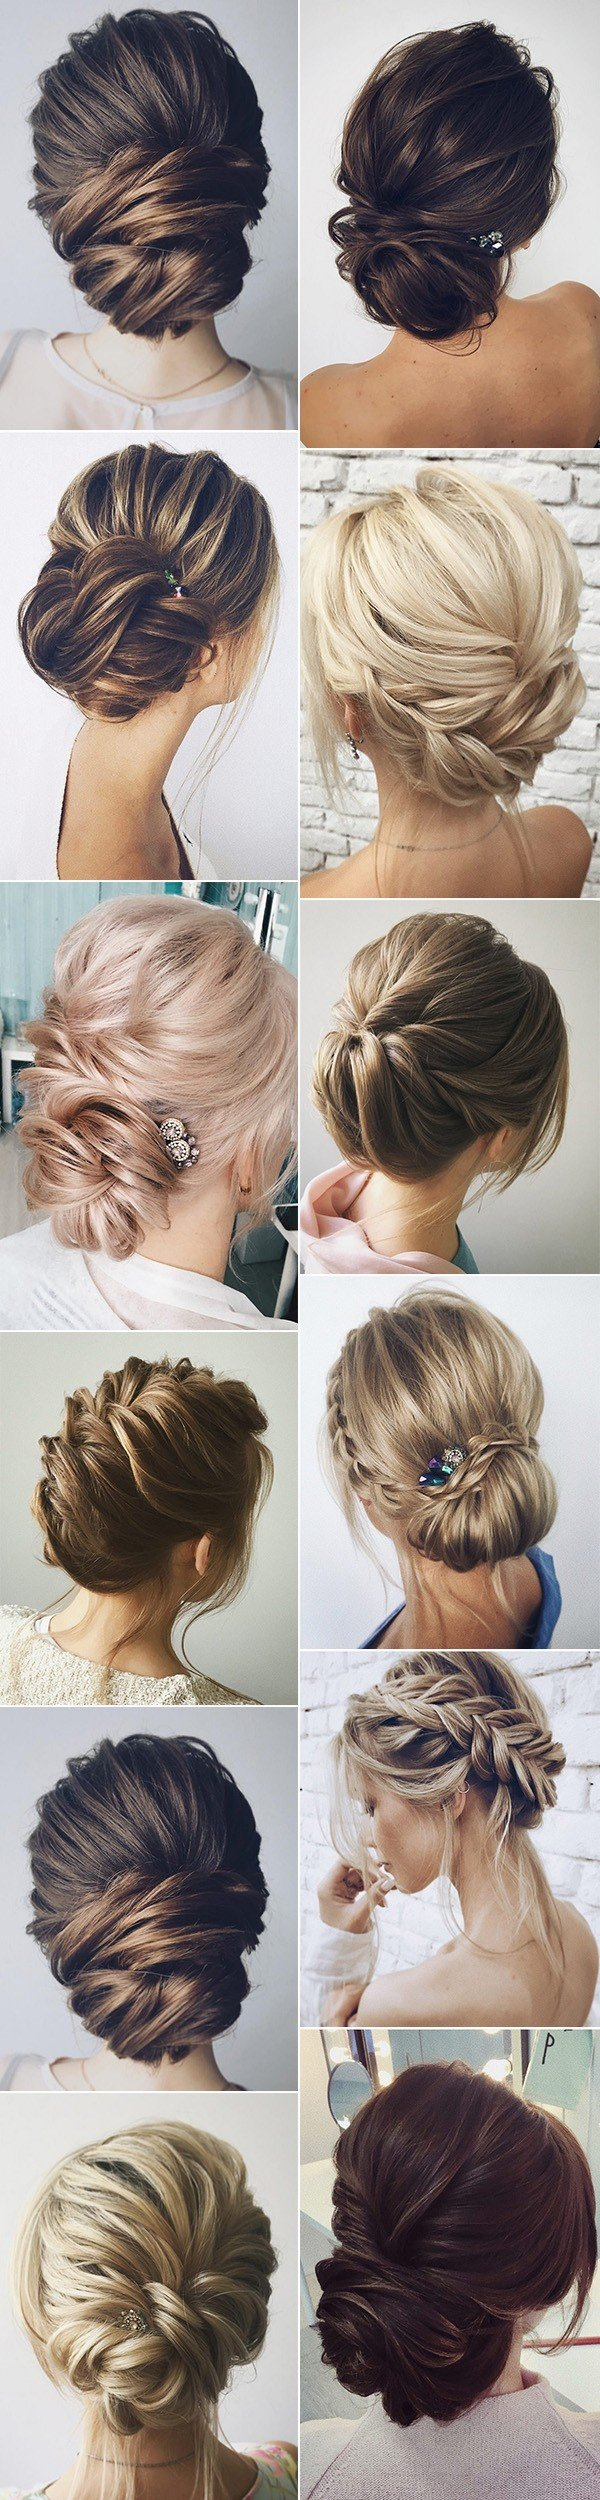 12 trending updo wedding hairstyles from instagram oh best day ever elegant bridal updos wedding hairstyles junglespirit Images